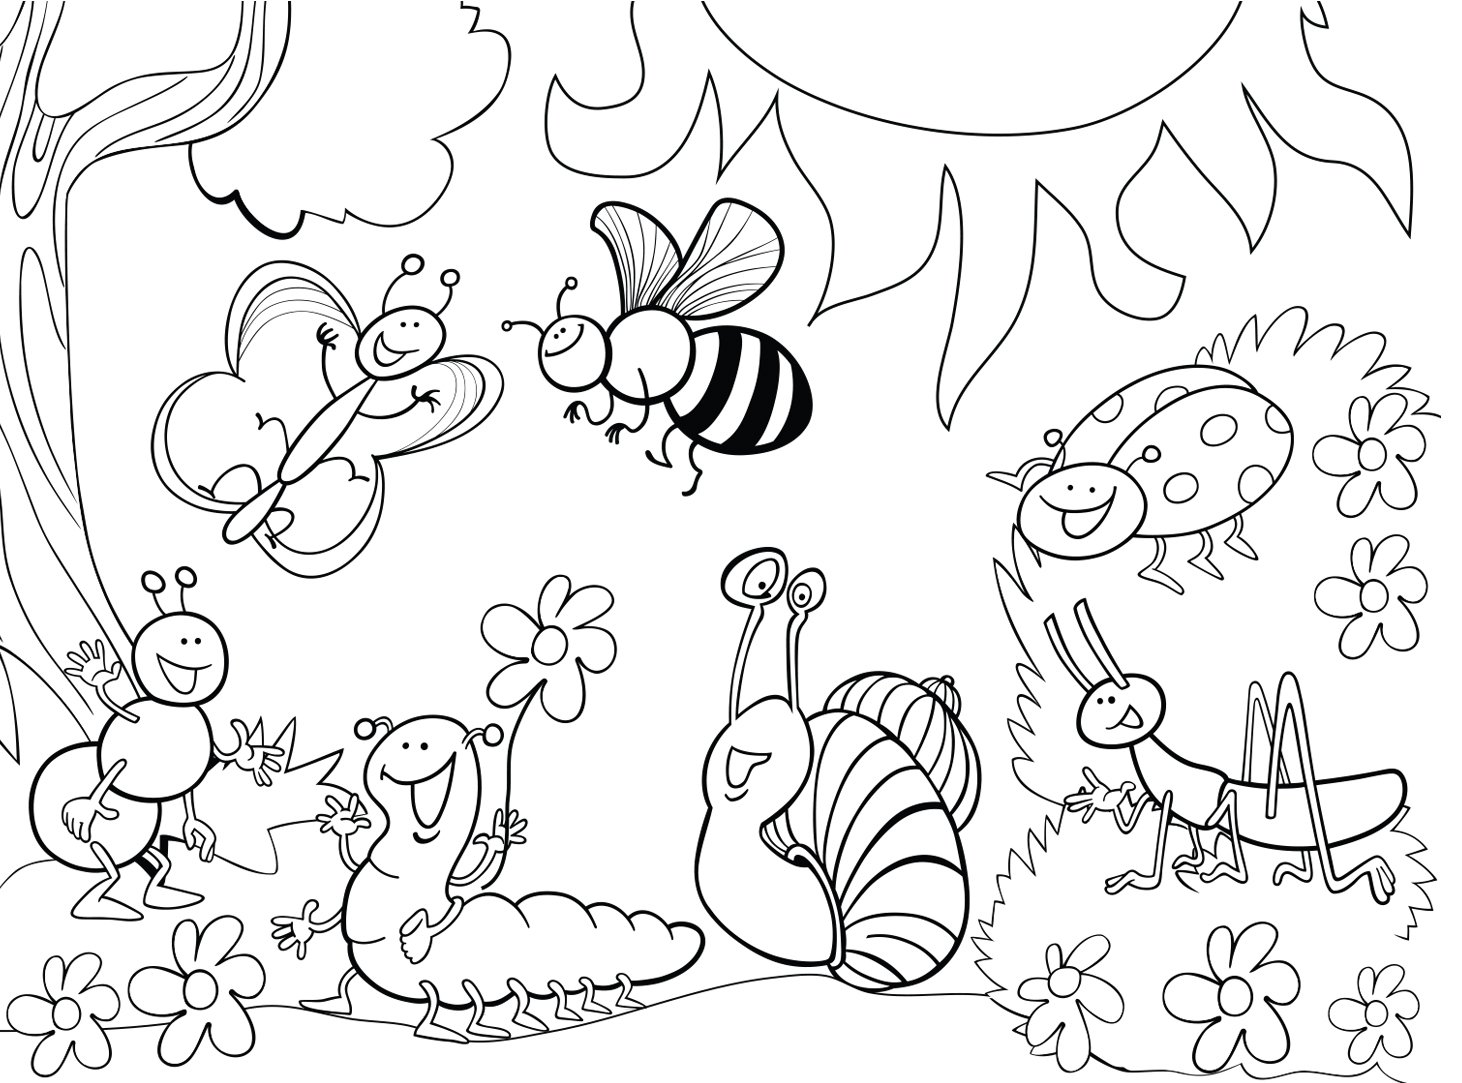 Printable Bug Coloring Pages In